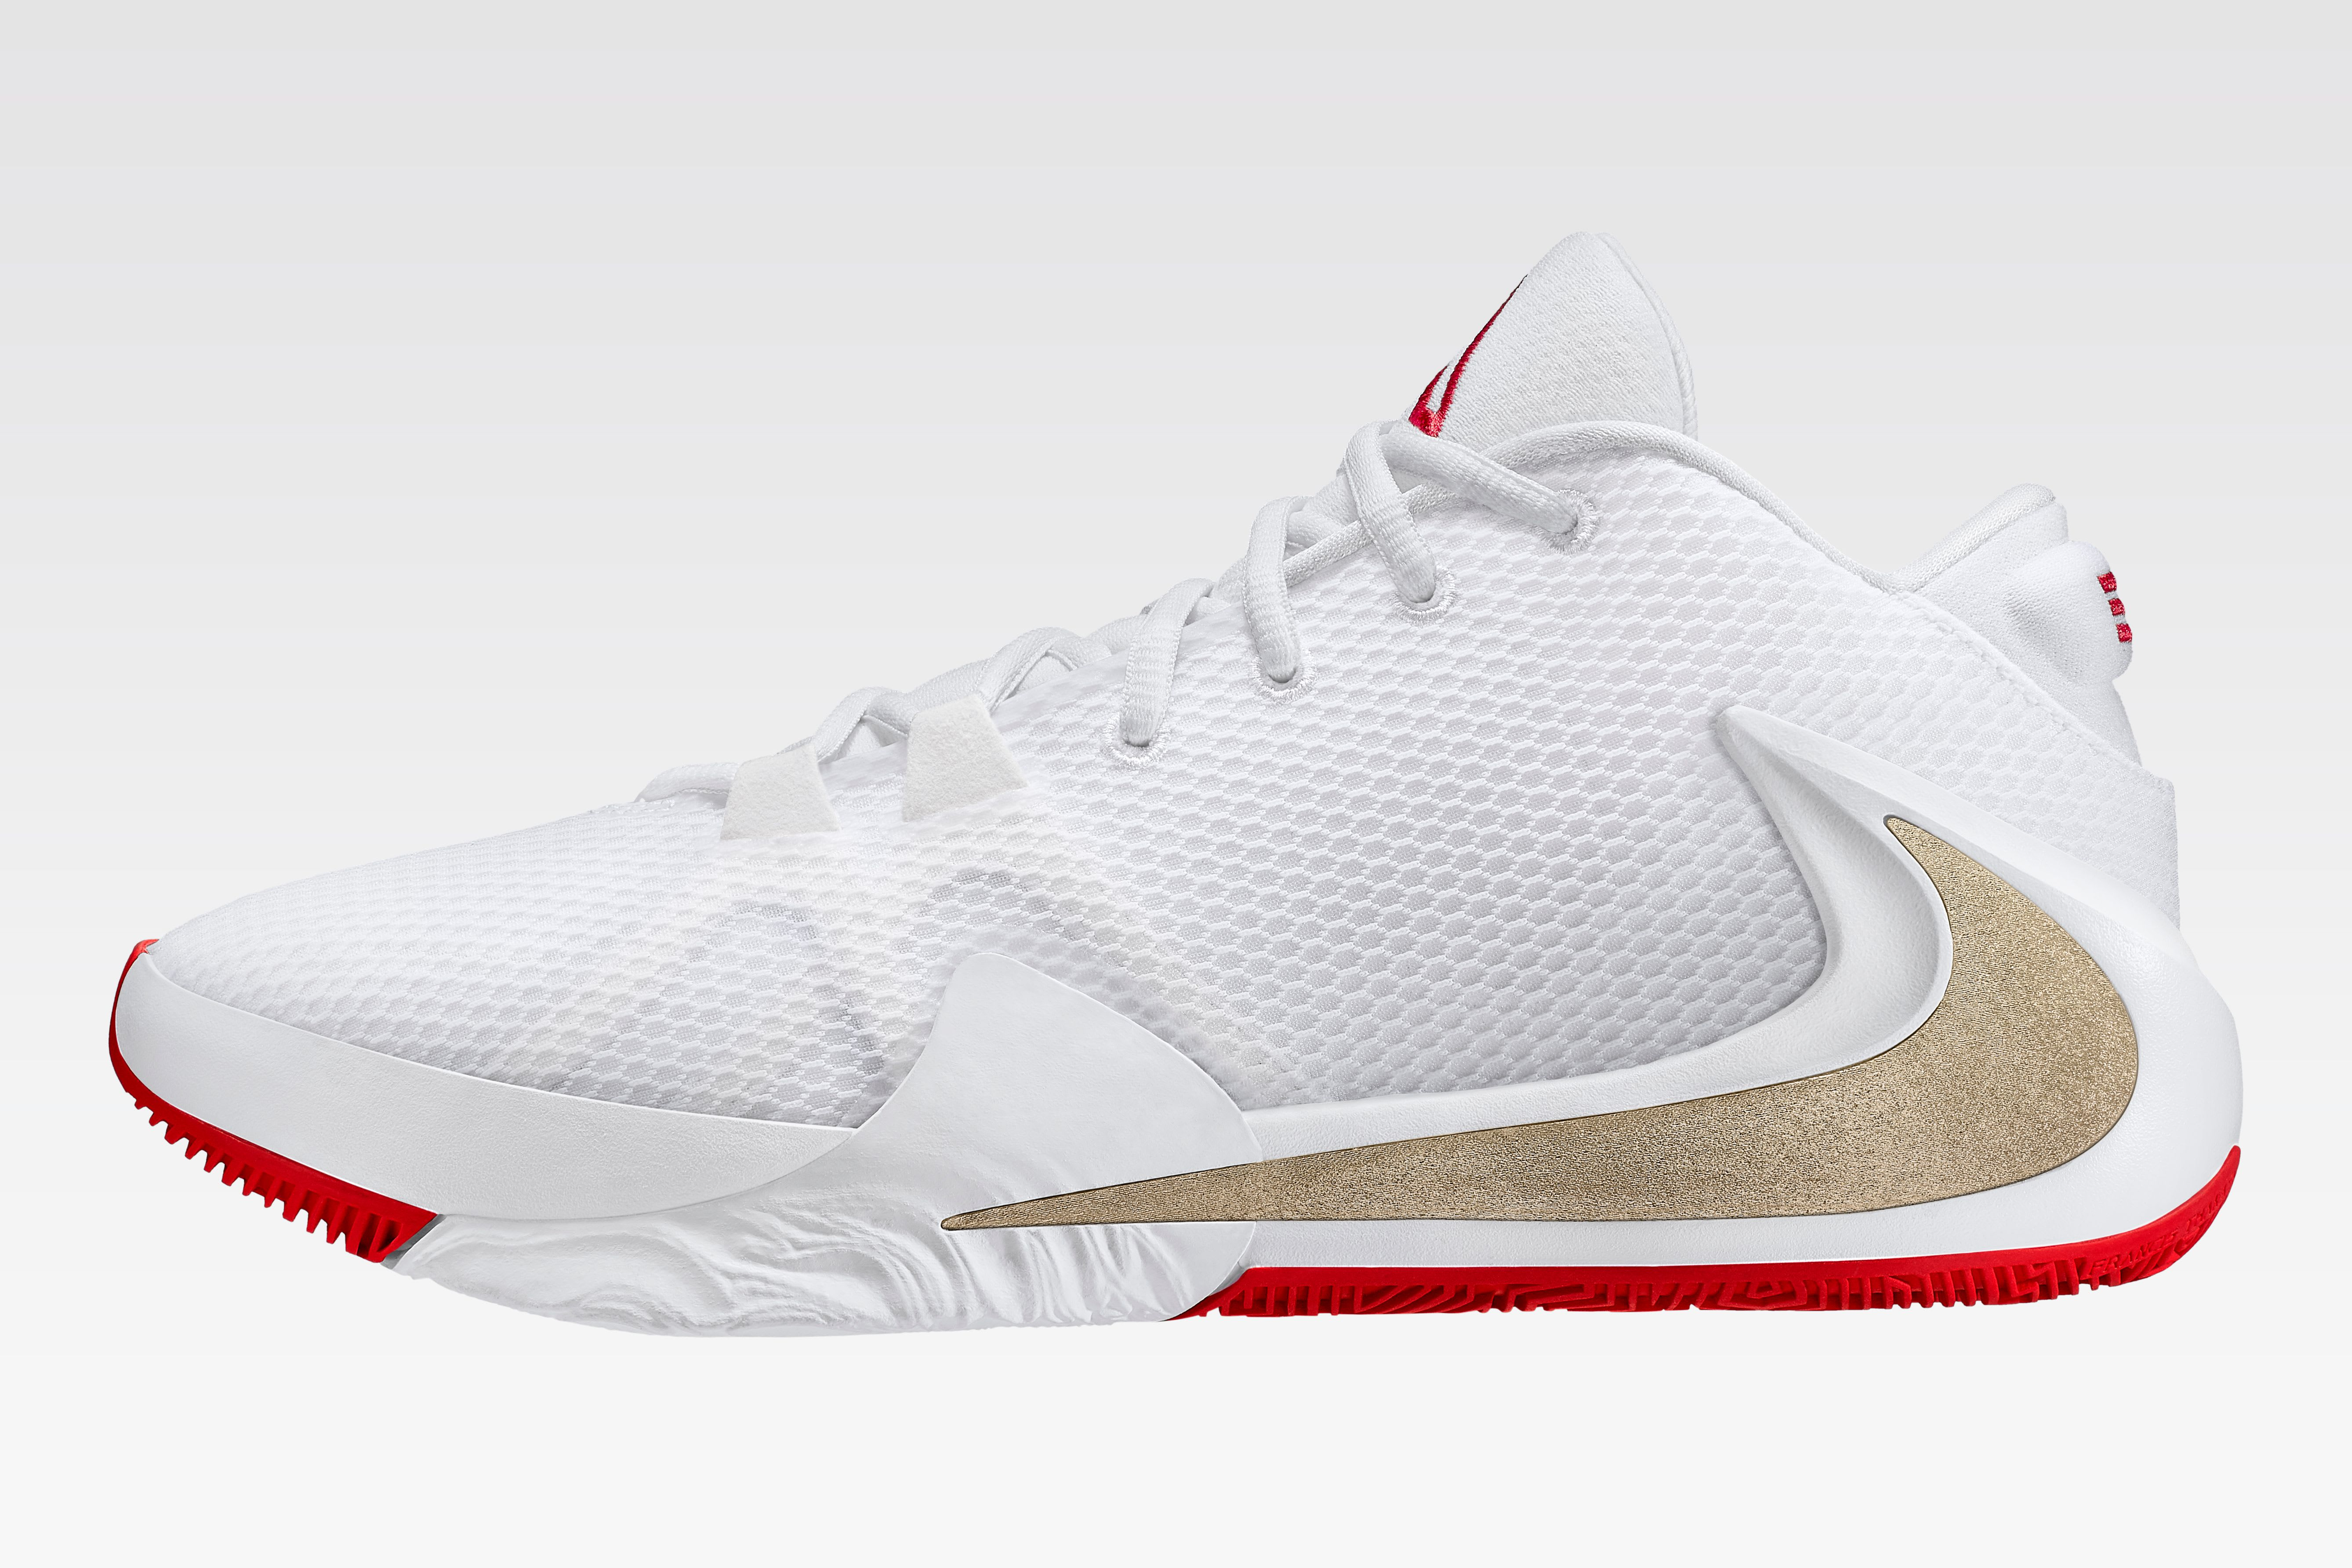 Nike Air Zoom Freak 1 (White/Gold/Red Lateral)